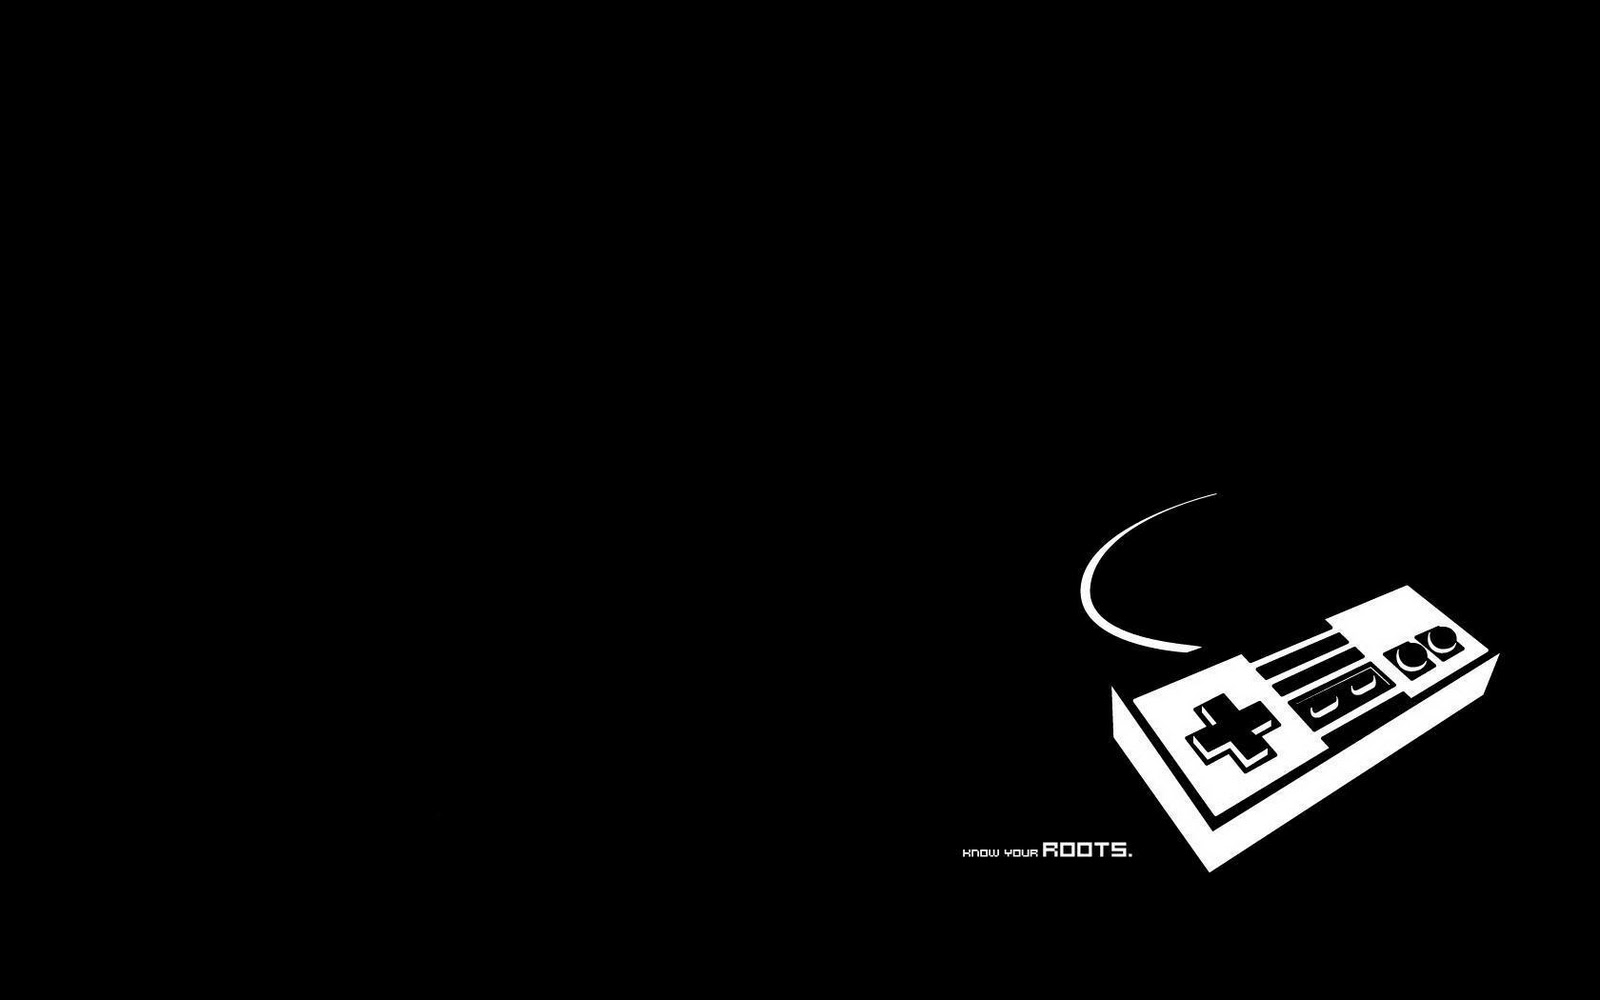 Wallpapers Retro Video Game Post 1600x1000